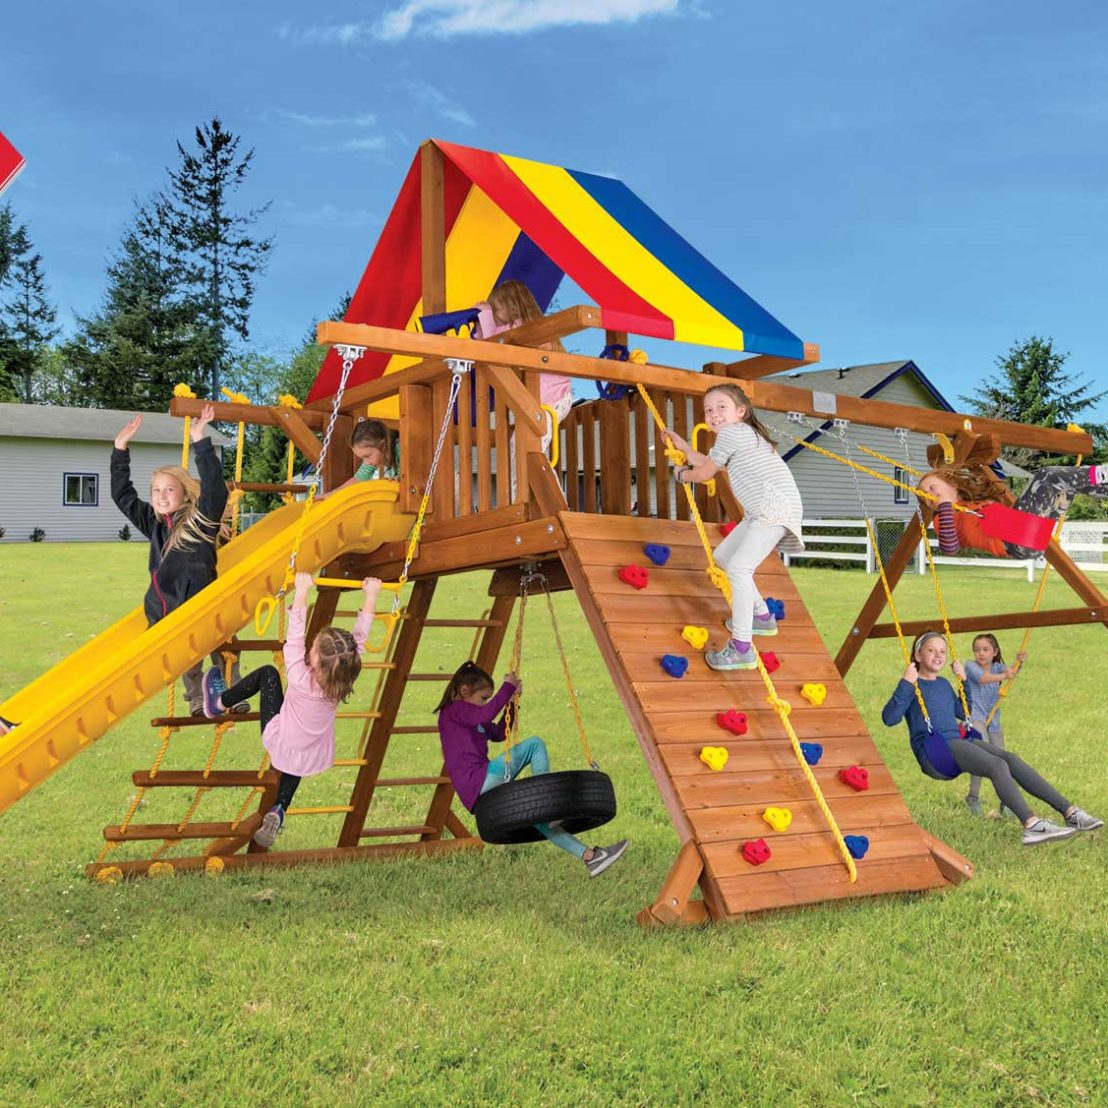 Circus Turbo Castle Pkg II with Kids Slide Outdoor Playset